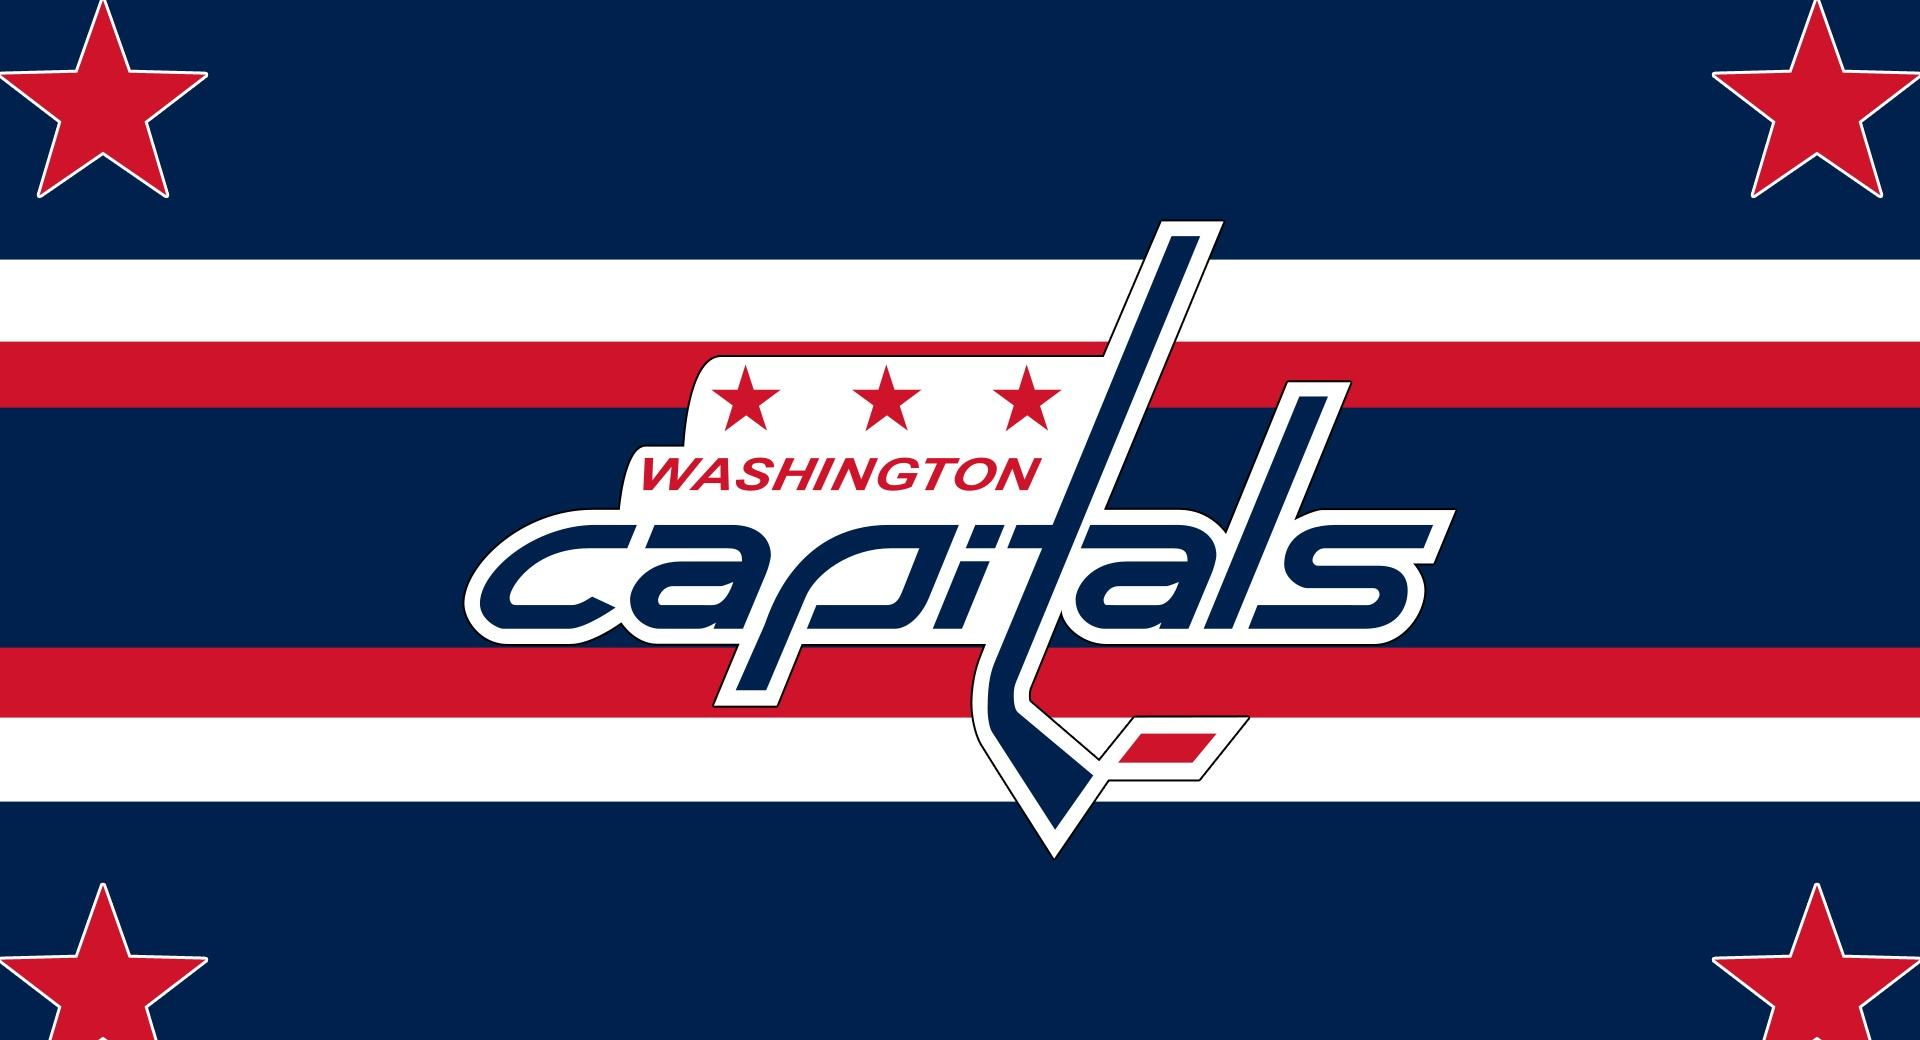 Washington Capitals wallpapers HD quality